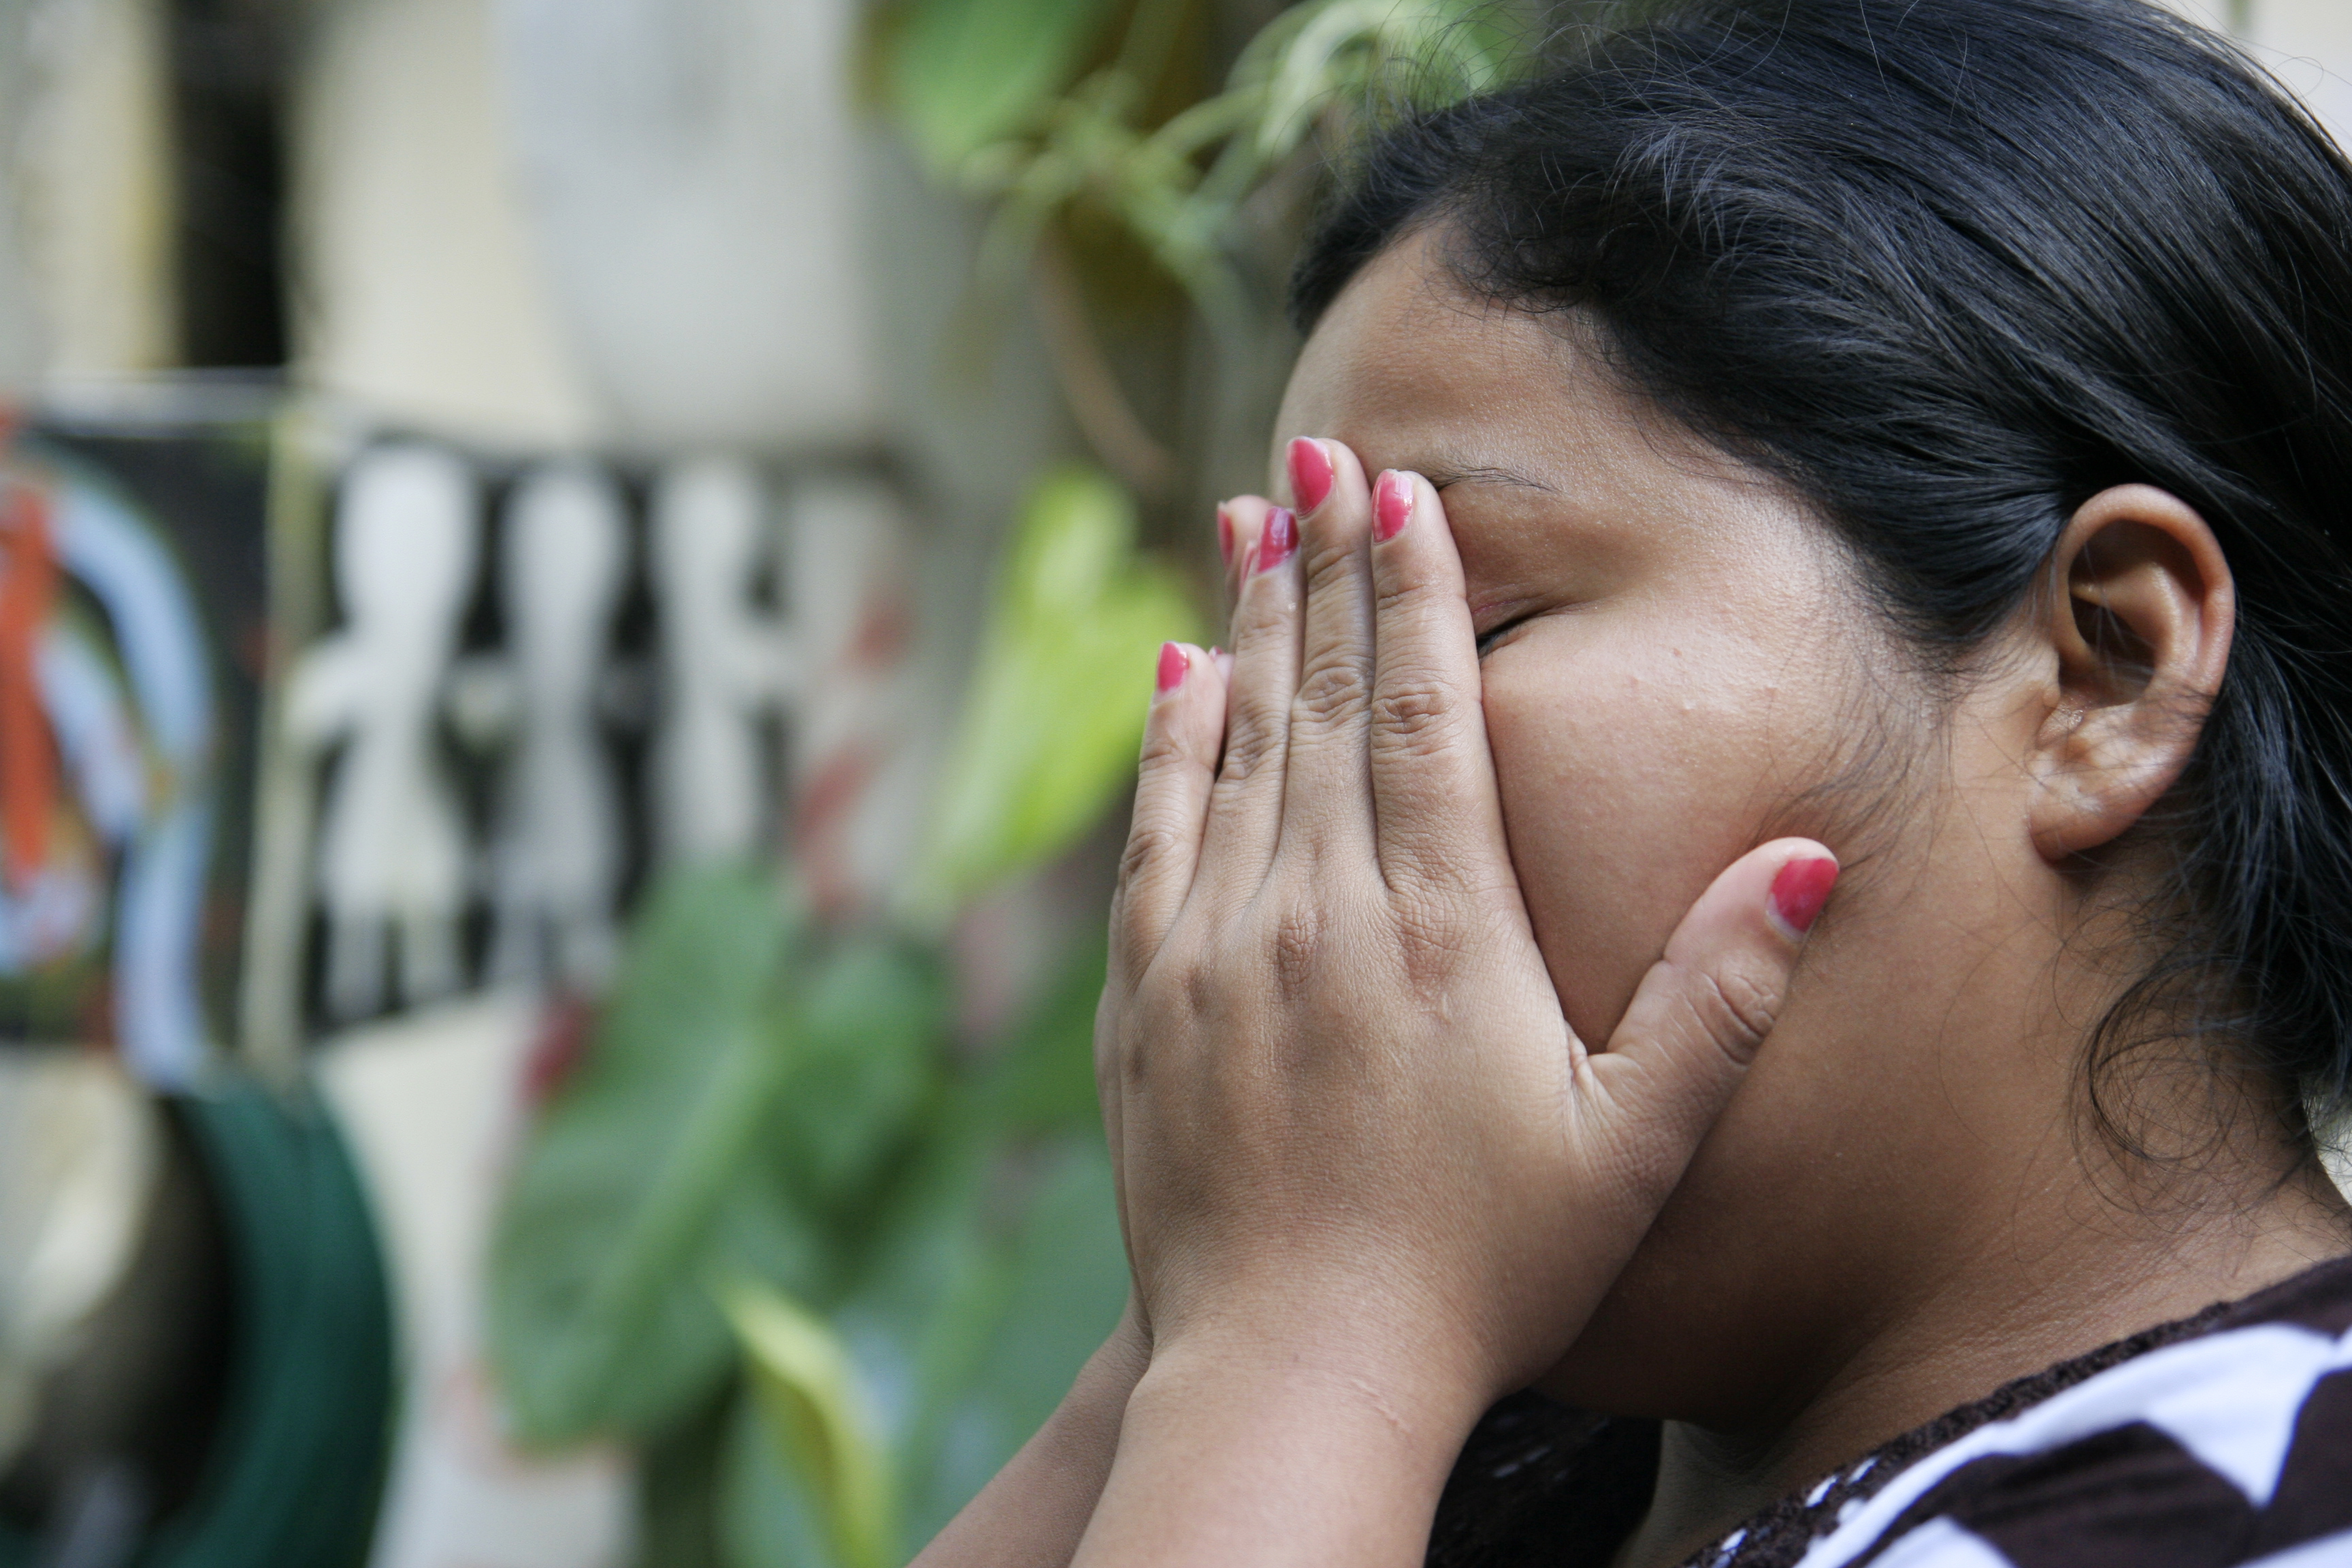 El Salvador: Marlene was accused and charged with having an abortion after she had a miscarriage when she was 18 years old.